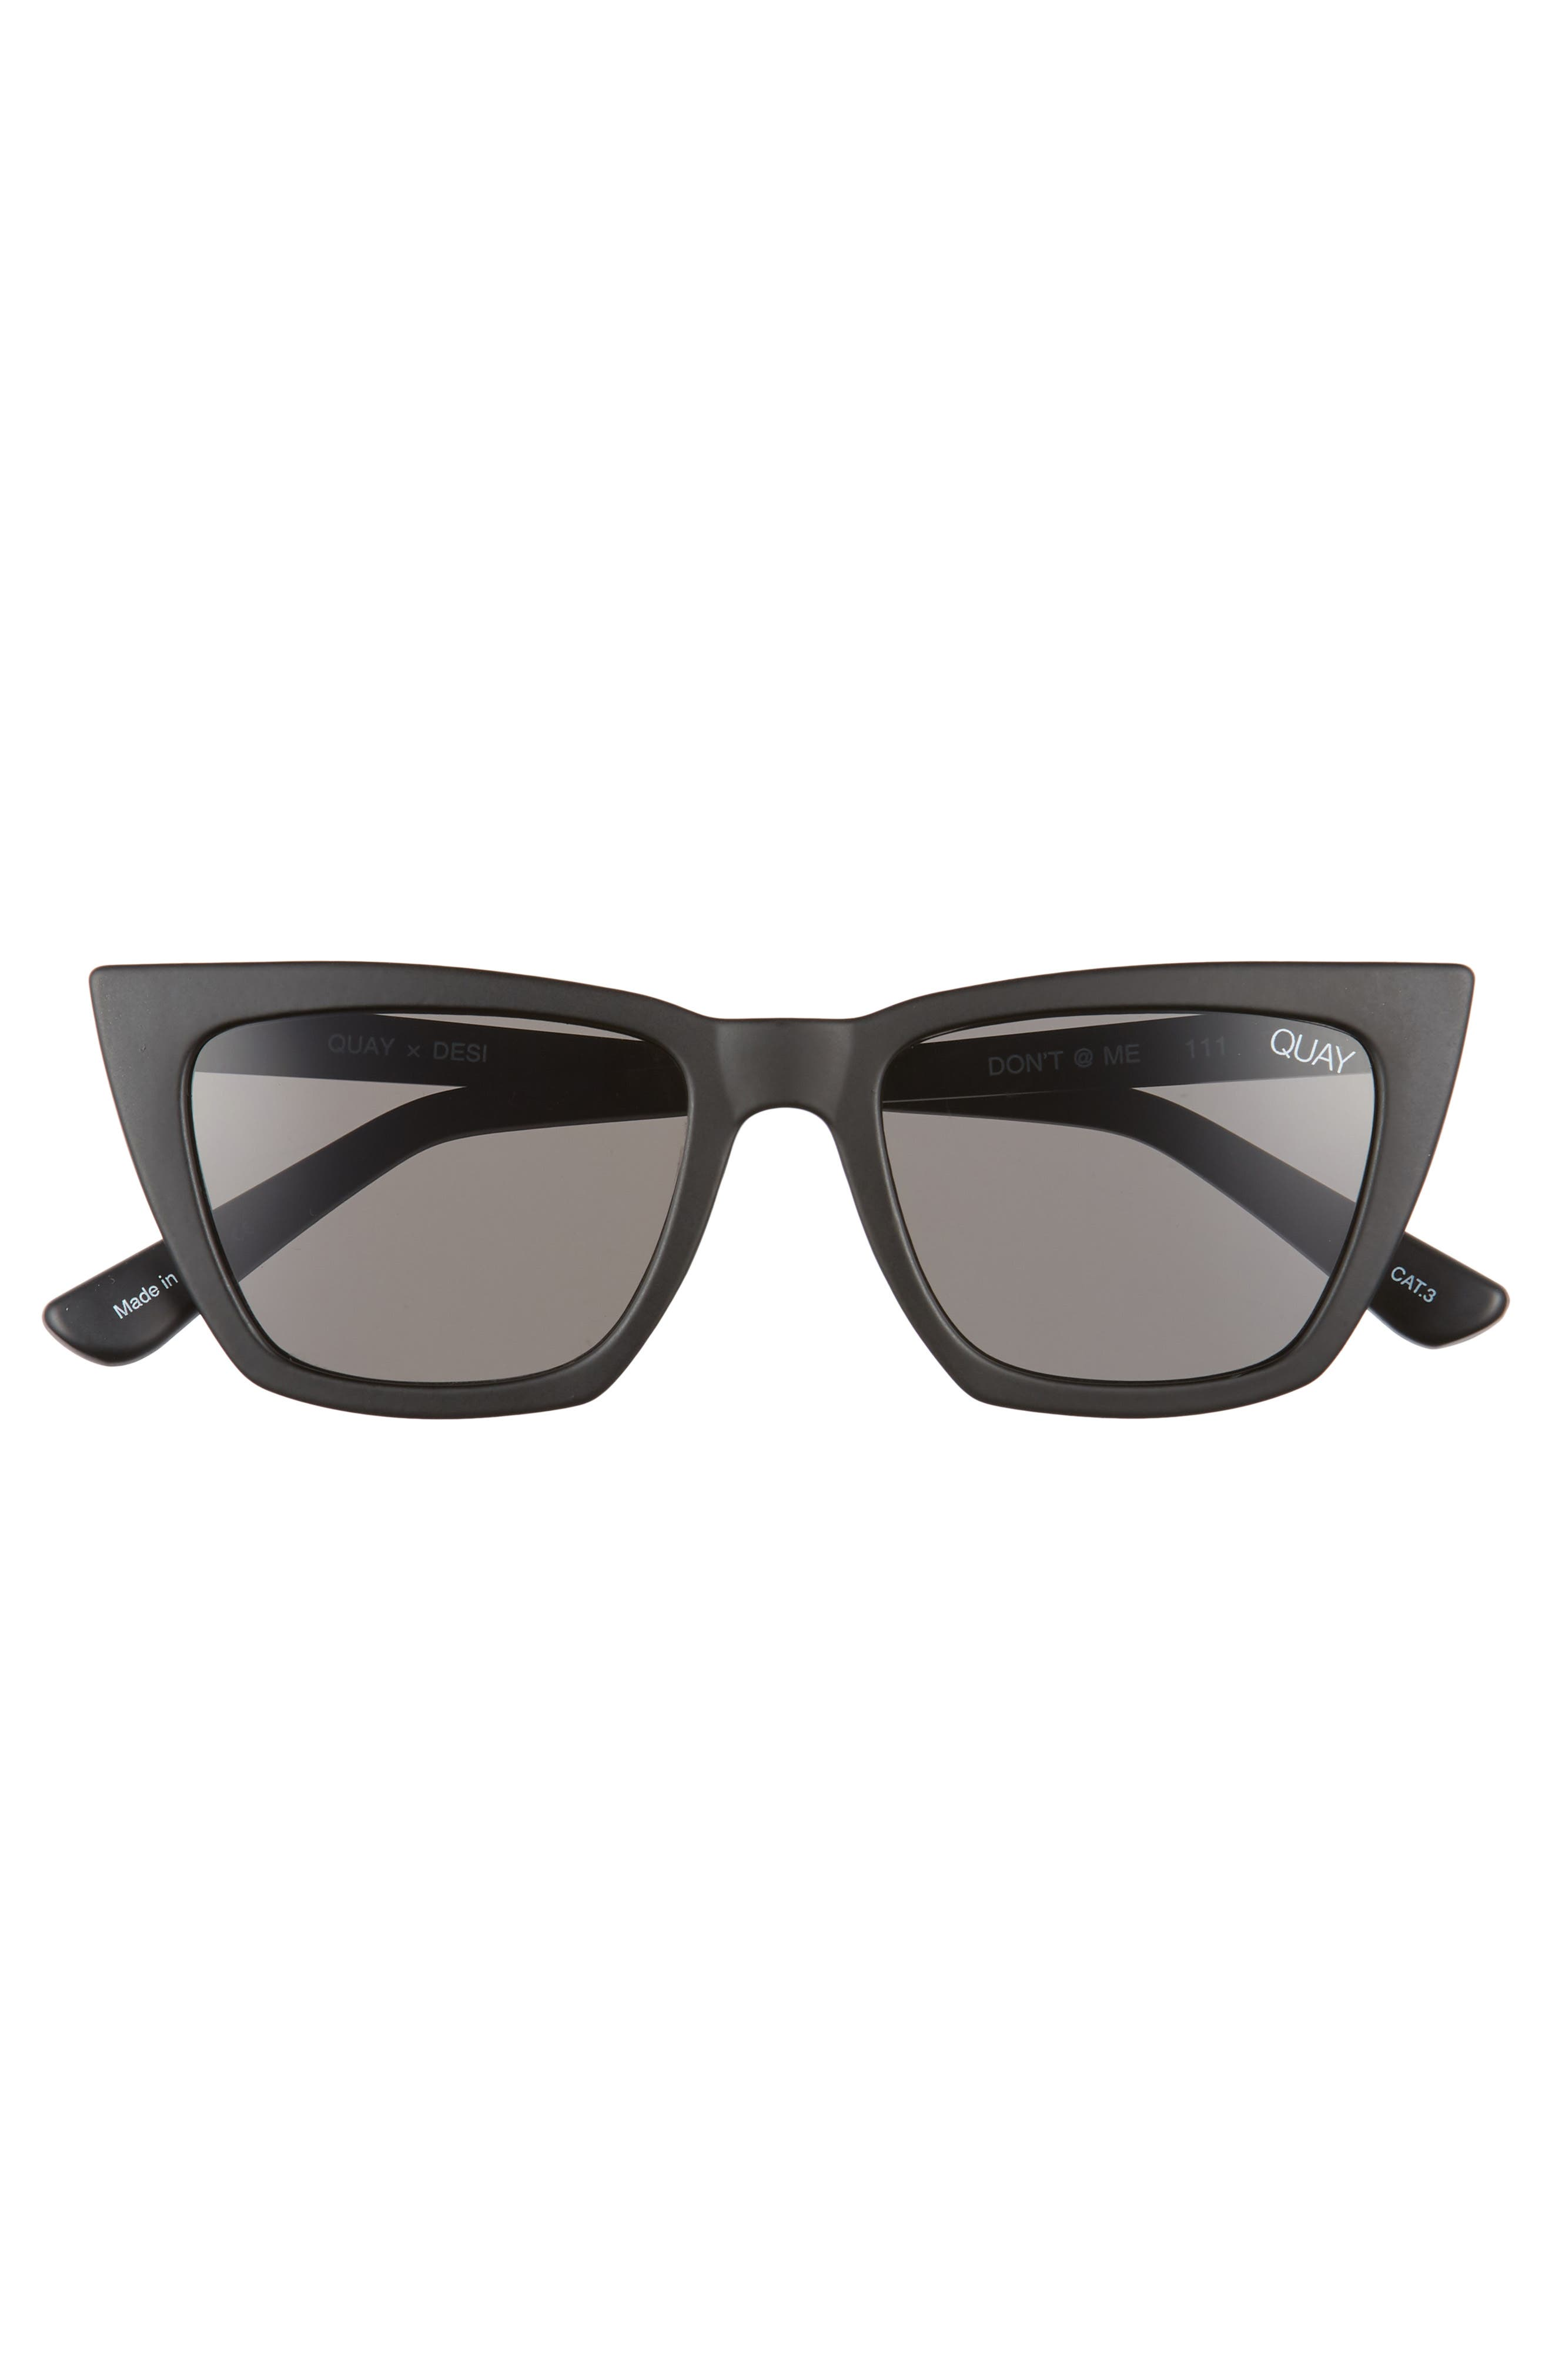 QUAY AUSTRALIA, x Desi Perkins Don't @ Me 48mm Cat Eye Sunglasses, Alternate thumbnail 3, color, BLACK/ SMOKE